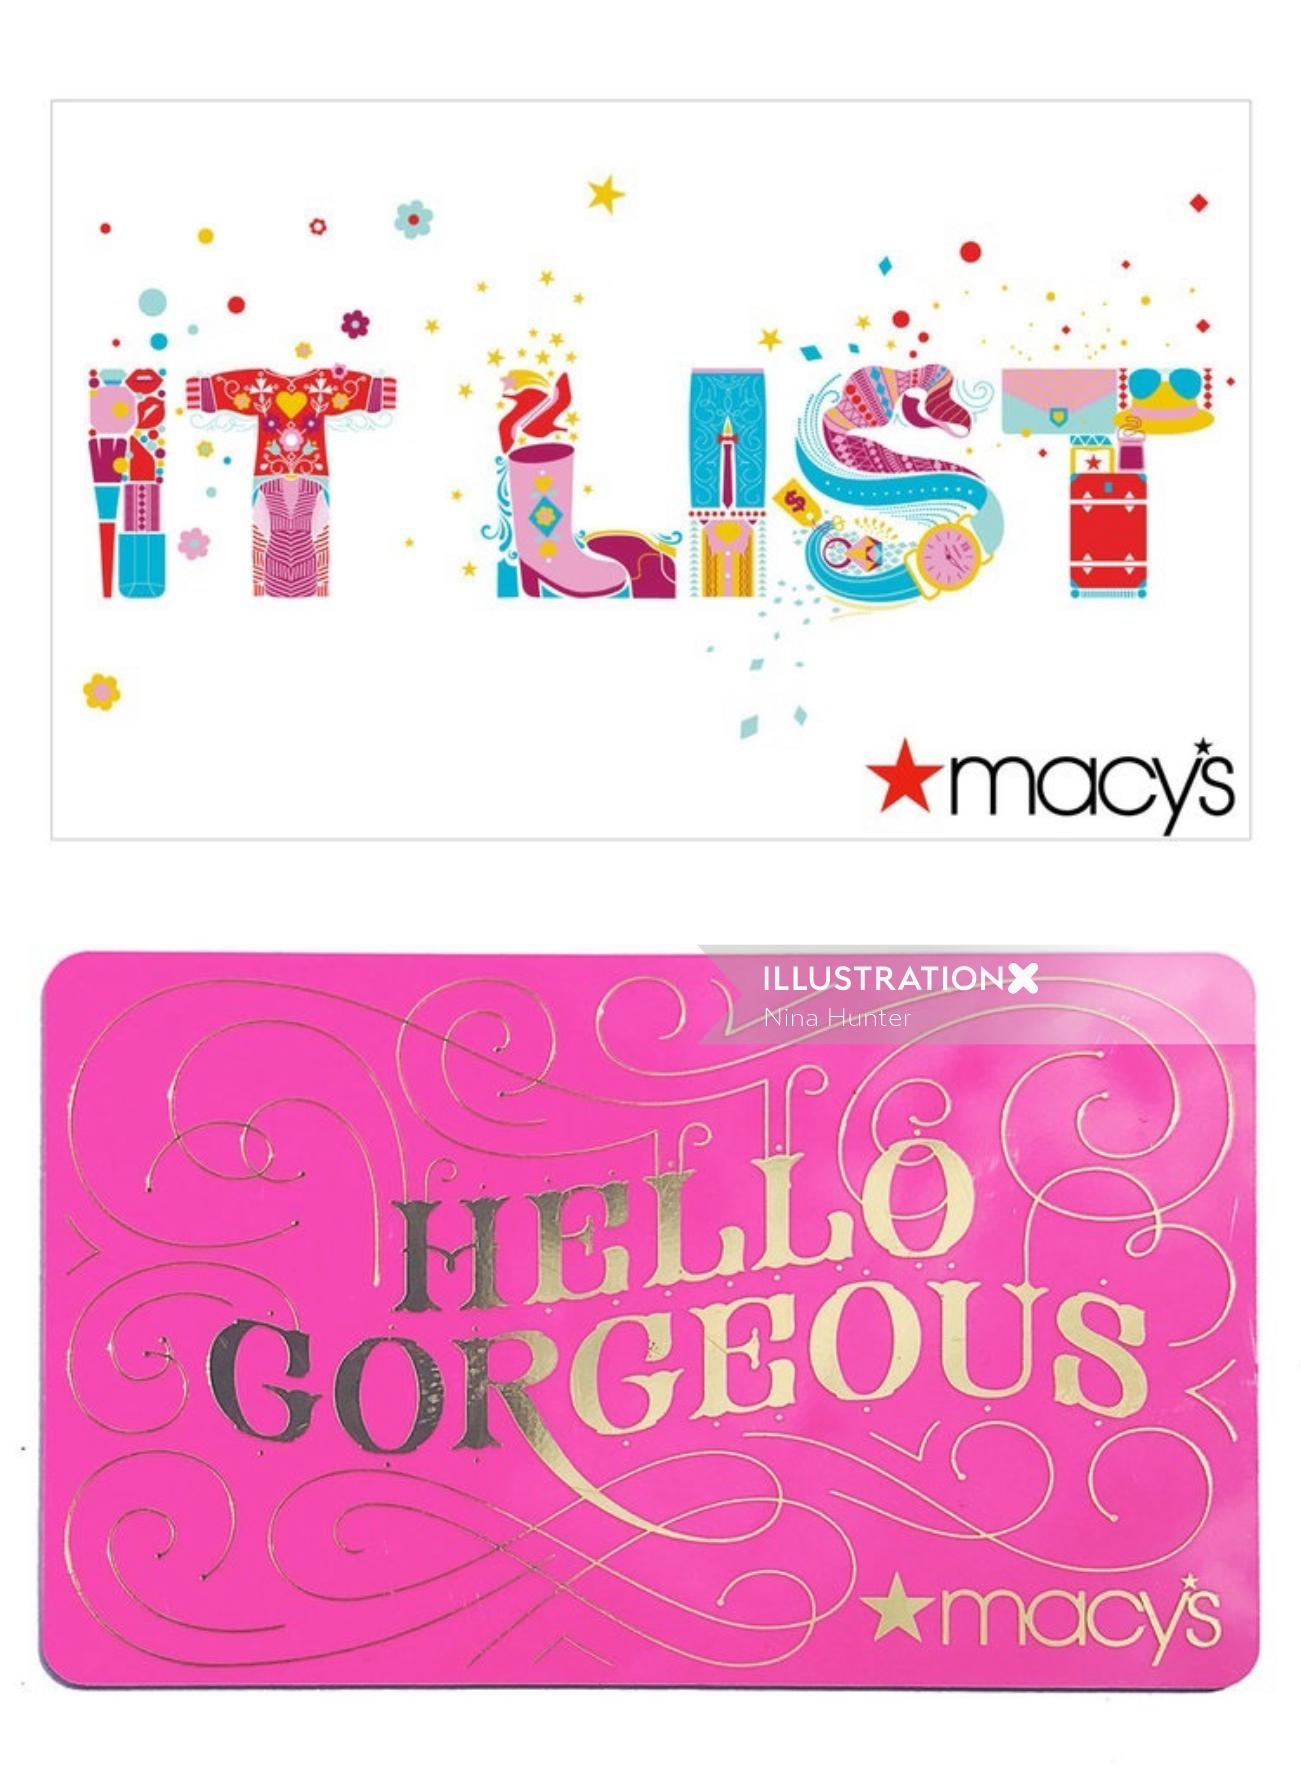 Graphic design of Macy's Gift Card